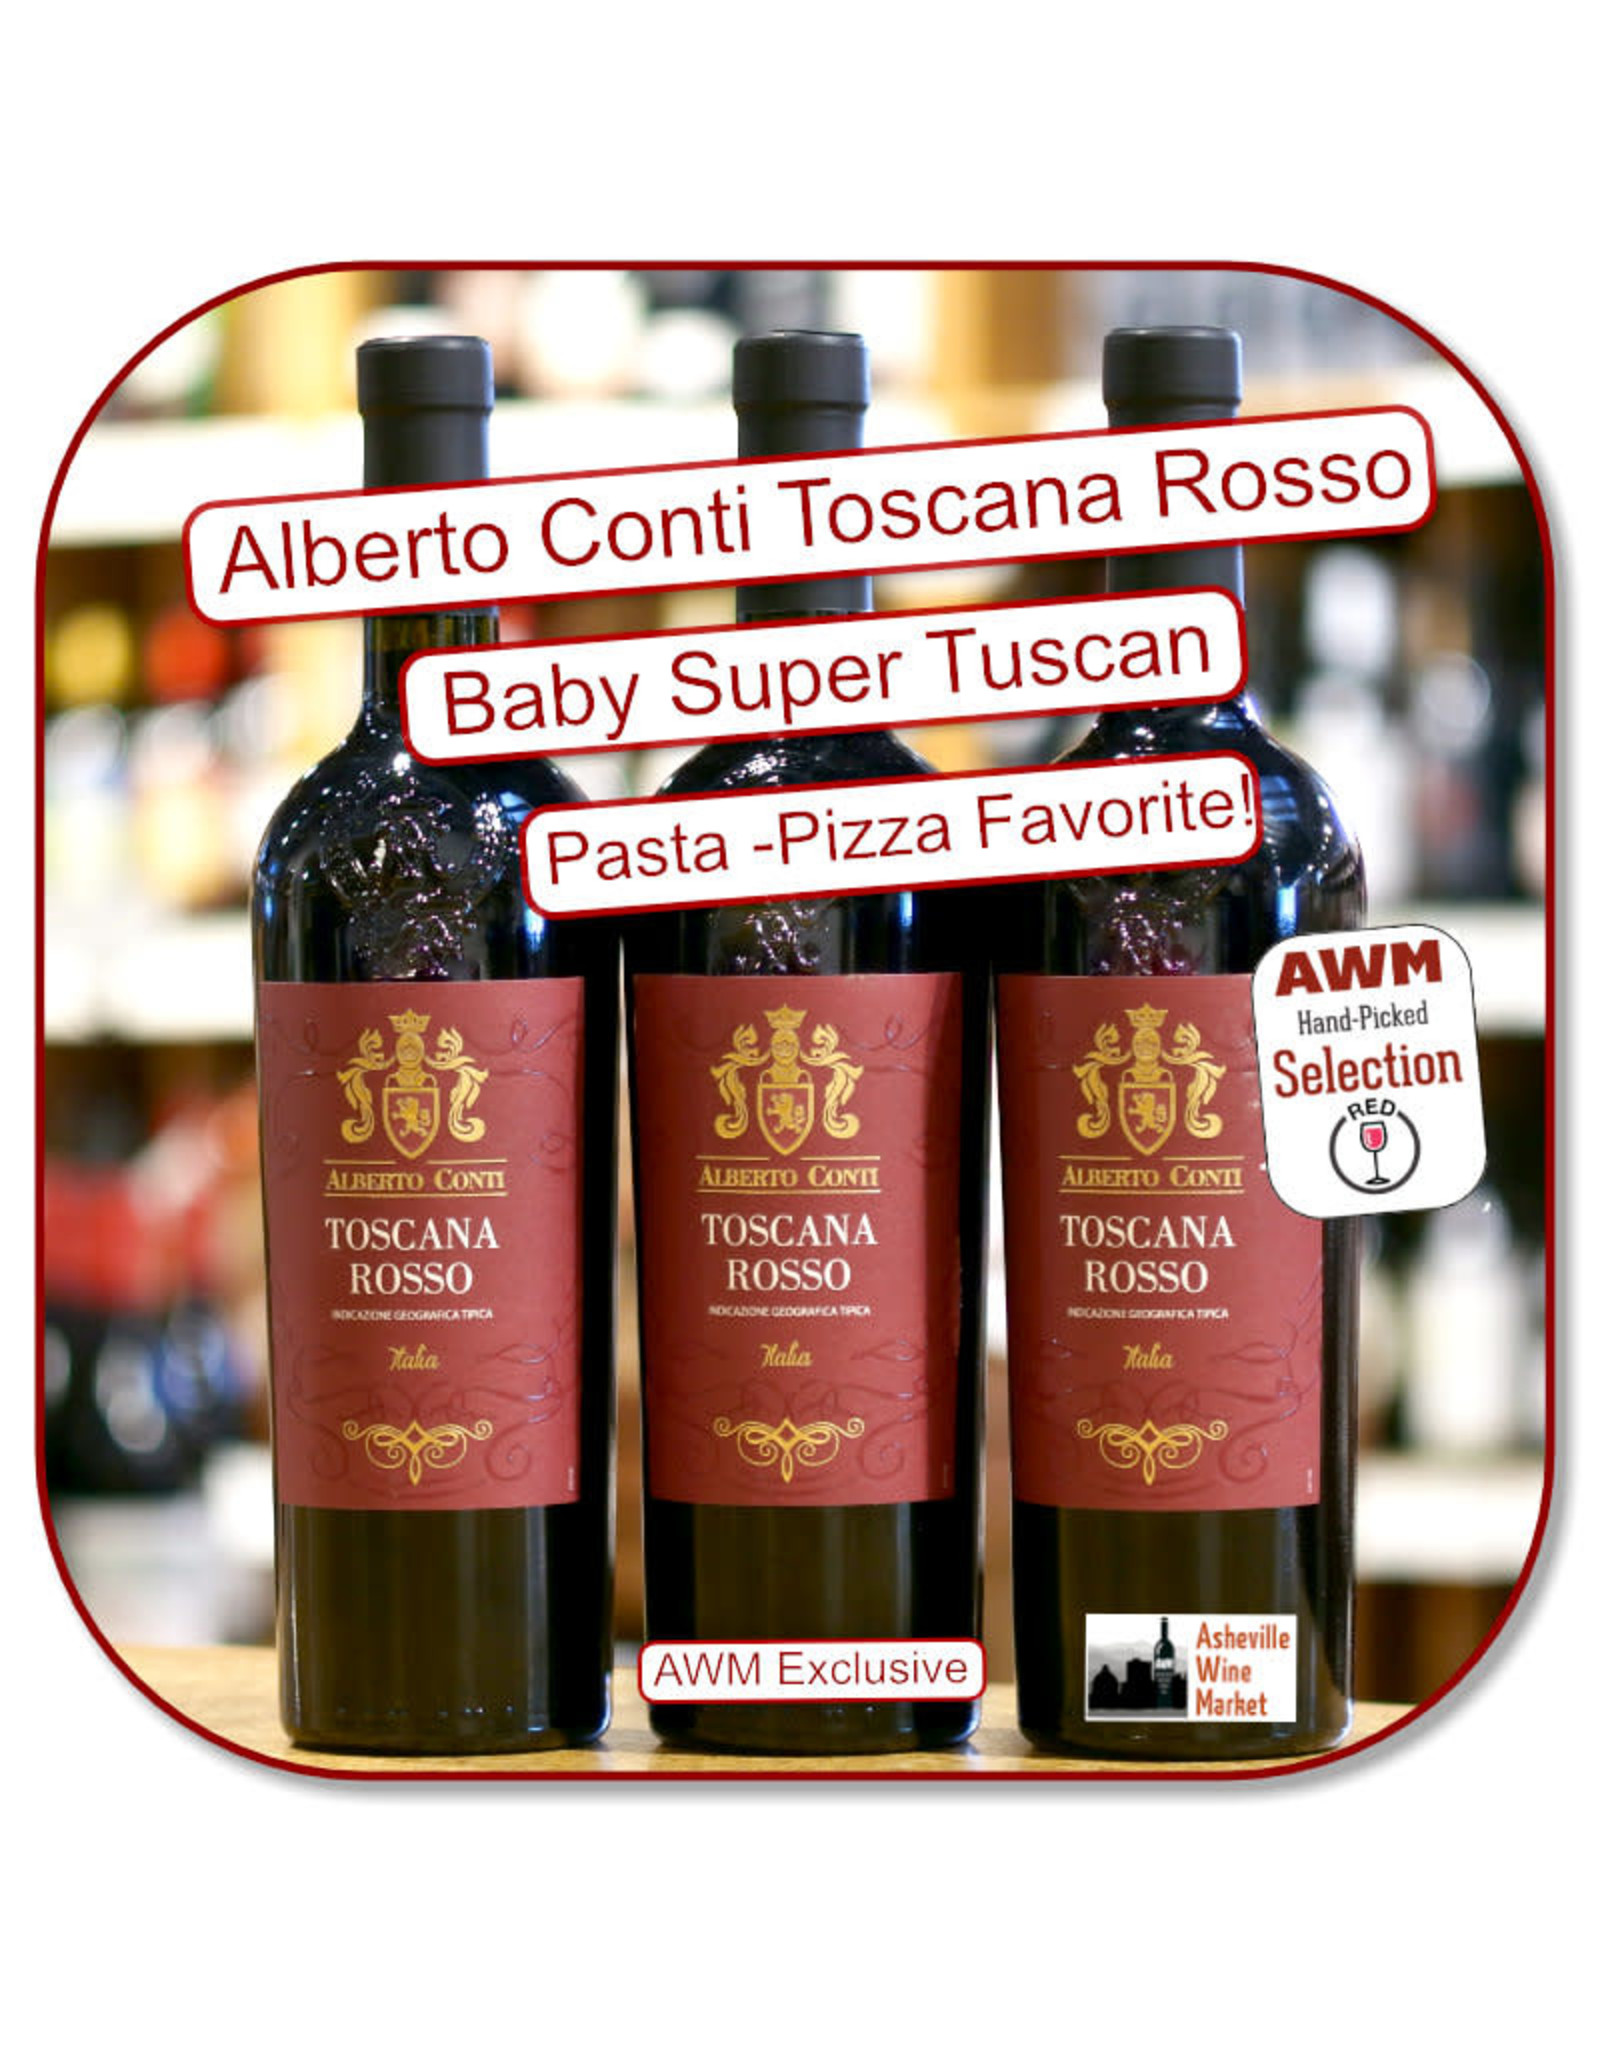 Red Blend - Europe Alberto Conti Toscana Rosso 2017